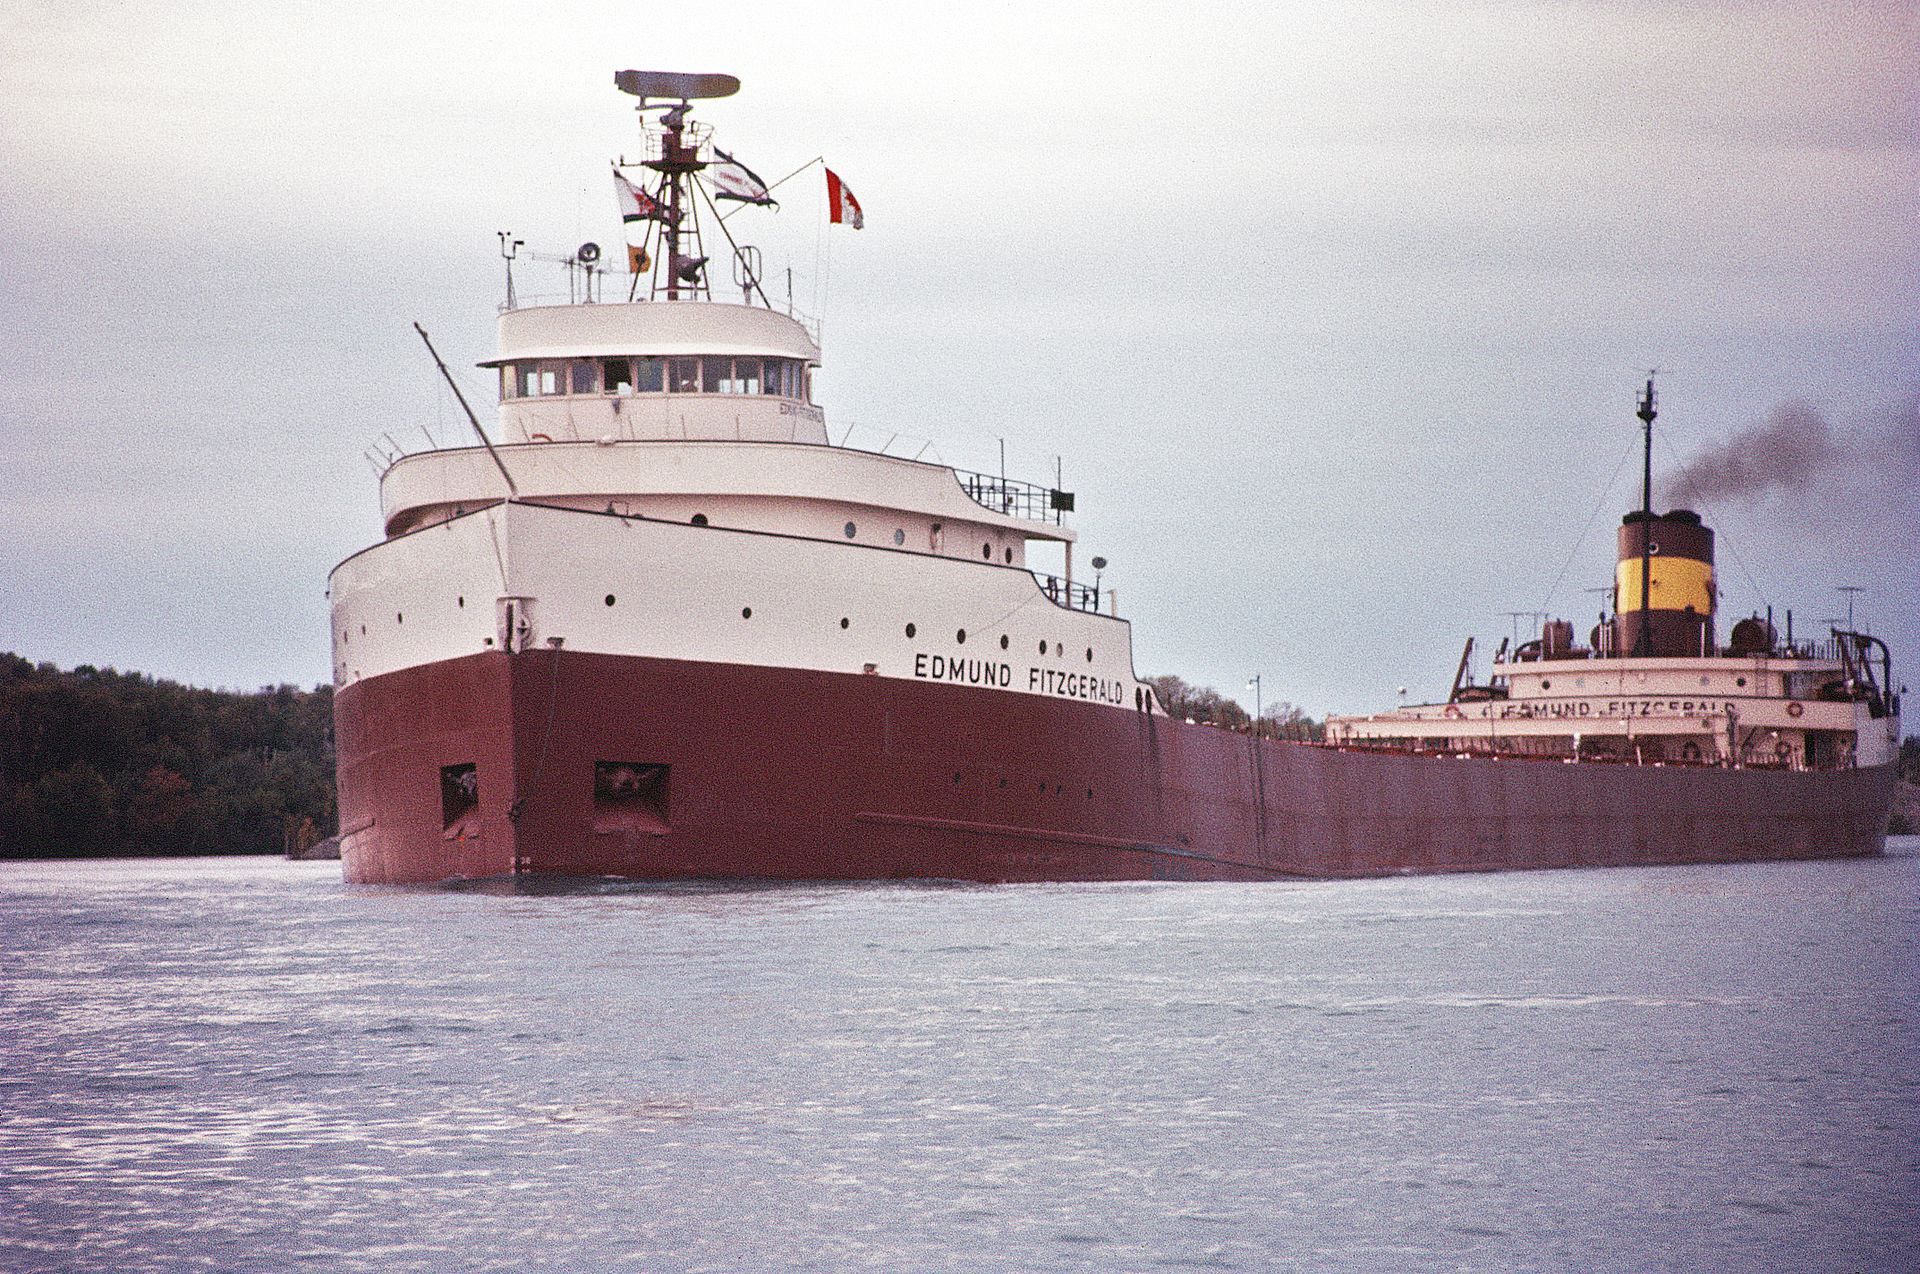 The Edmund Fitzgerald sank in Lake Superior on this date in 1975